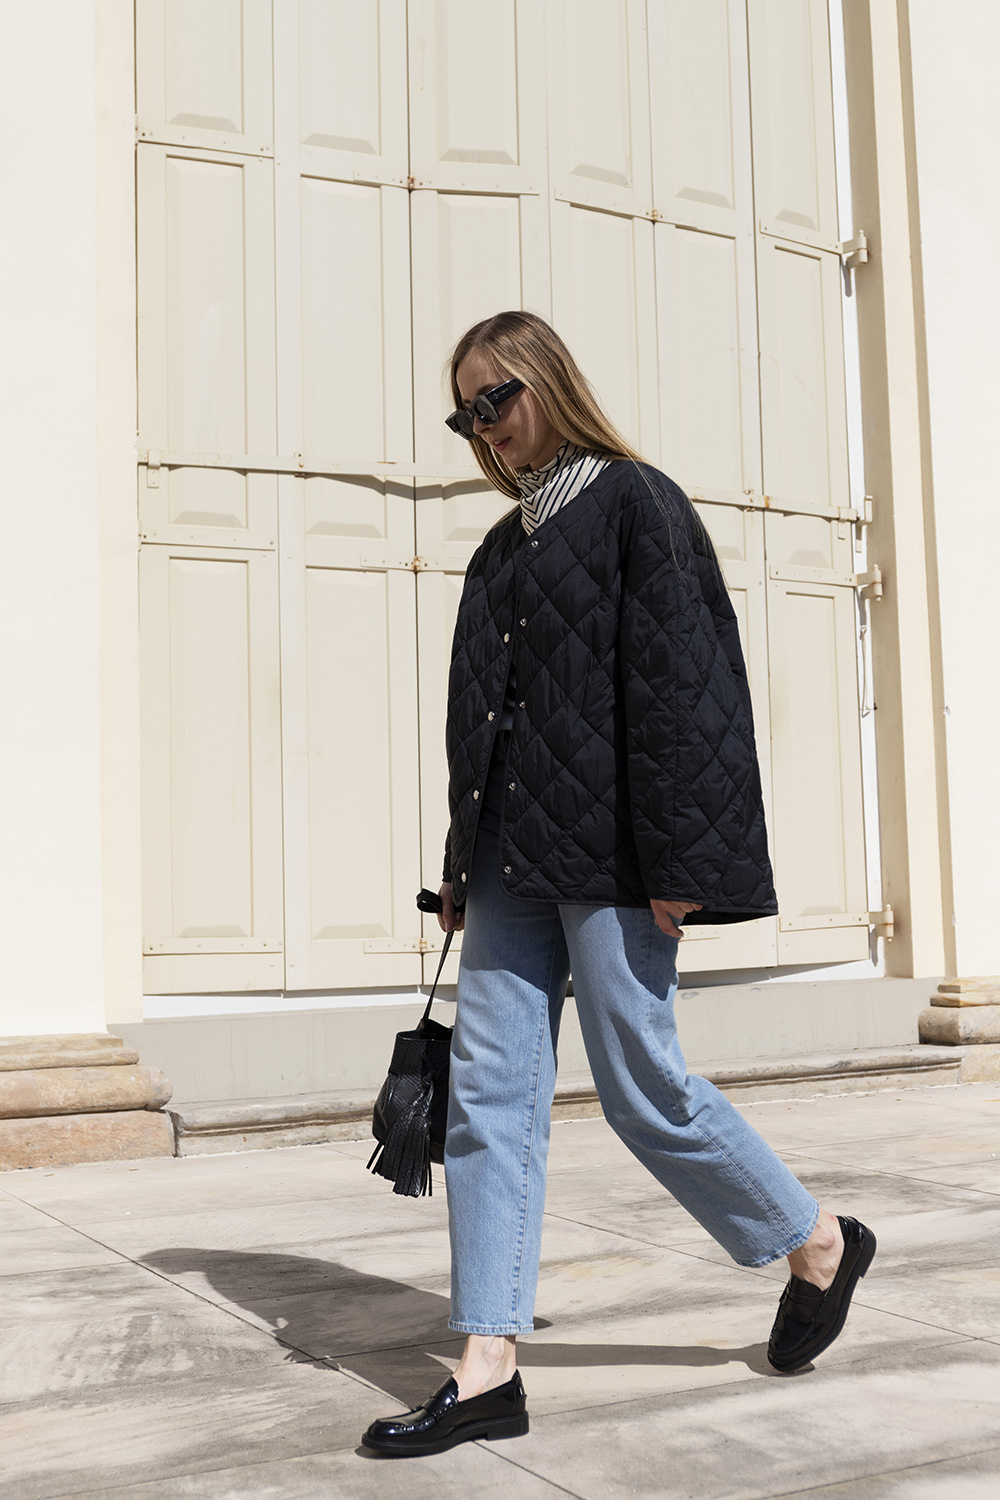 Spring minimal street style with patent loafers